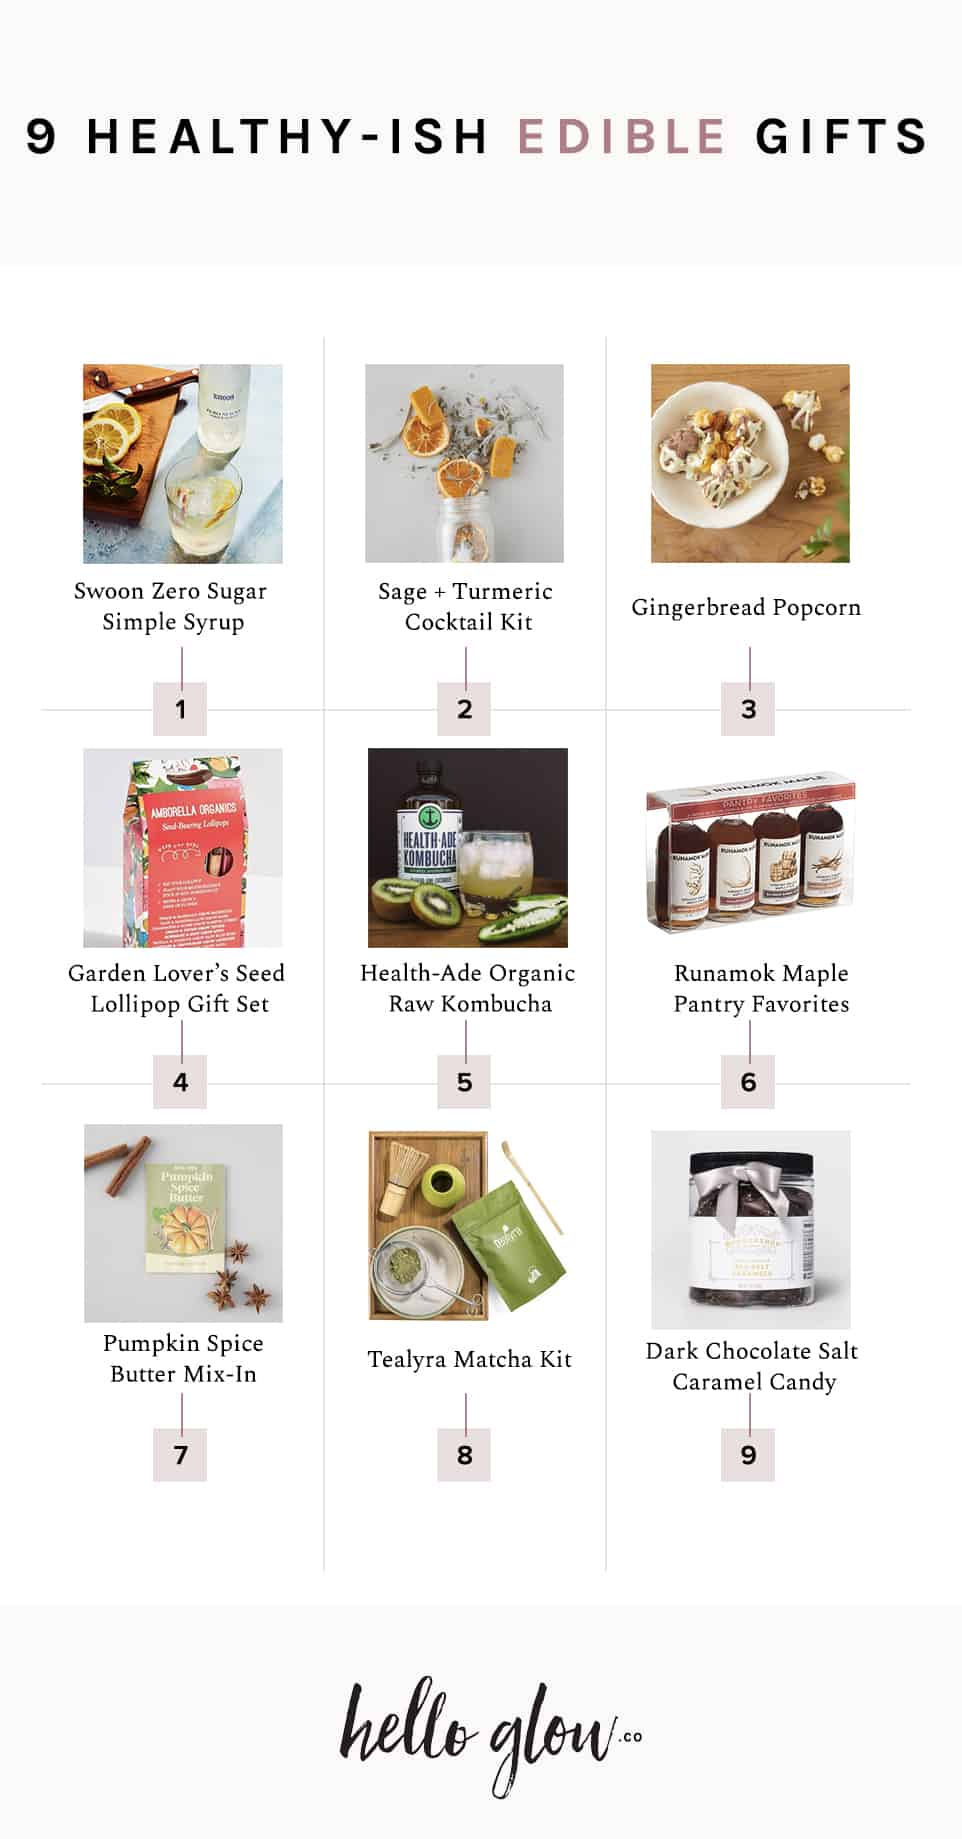 9 Healthy-ish Edible Gifts - Hello Glow